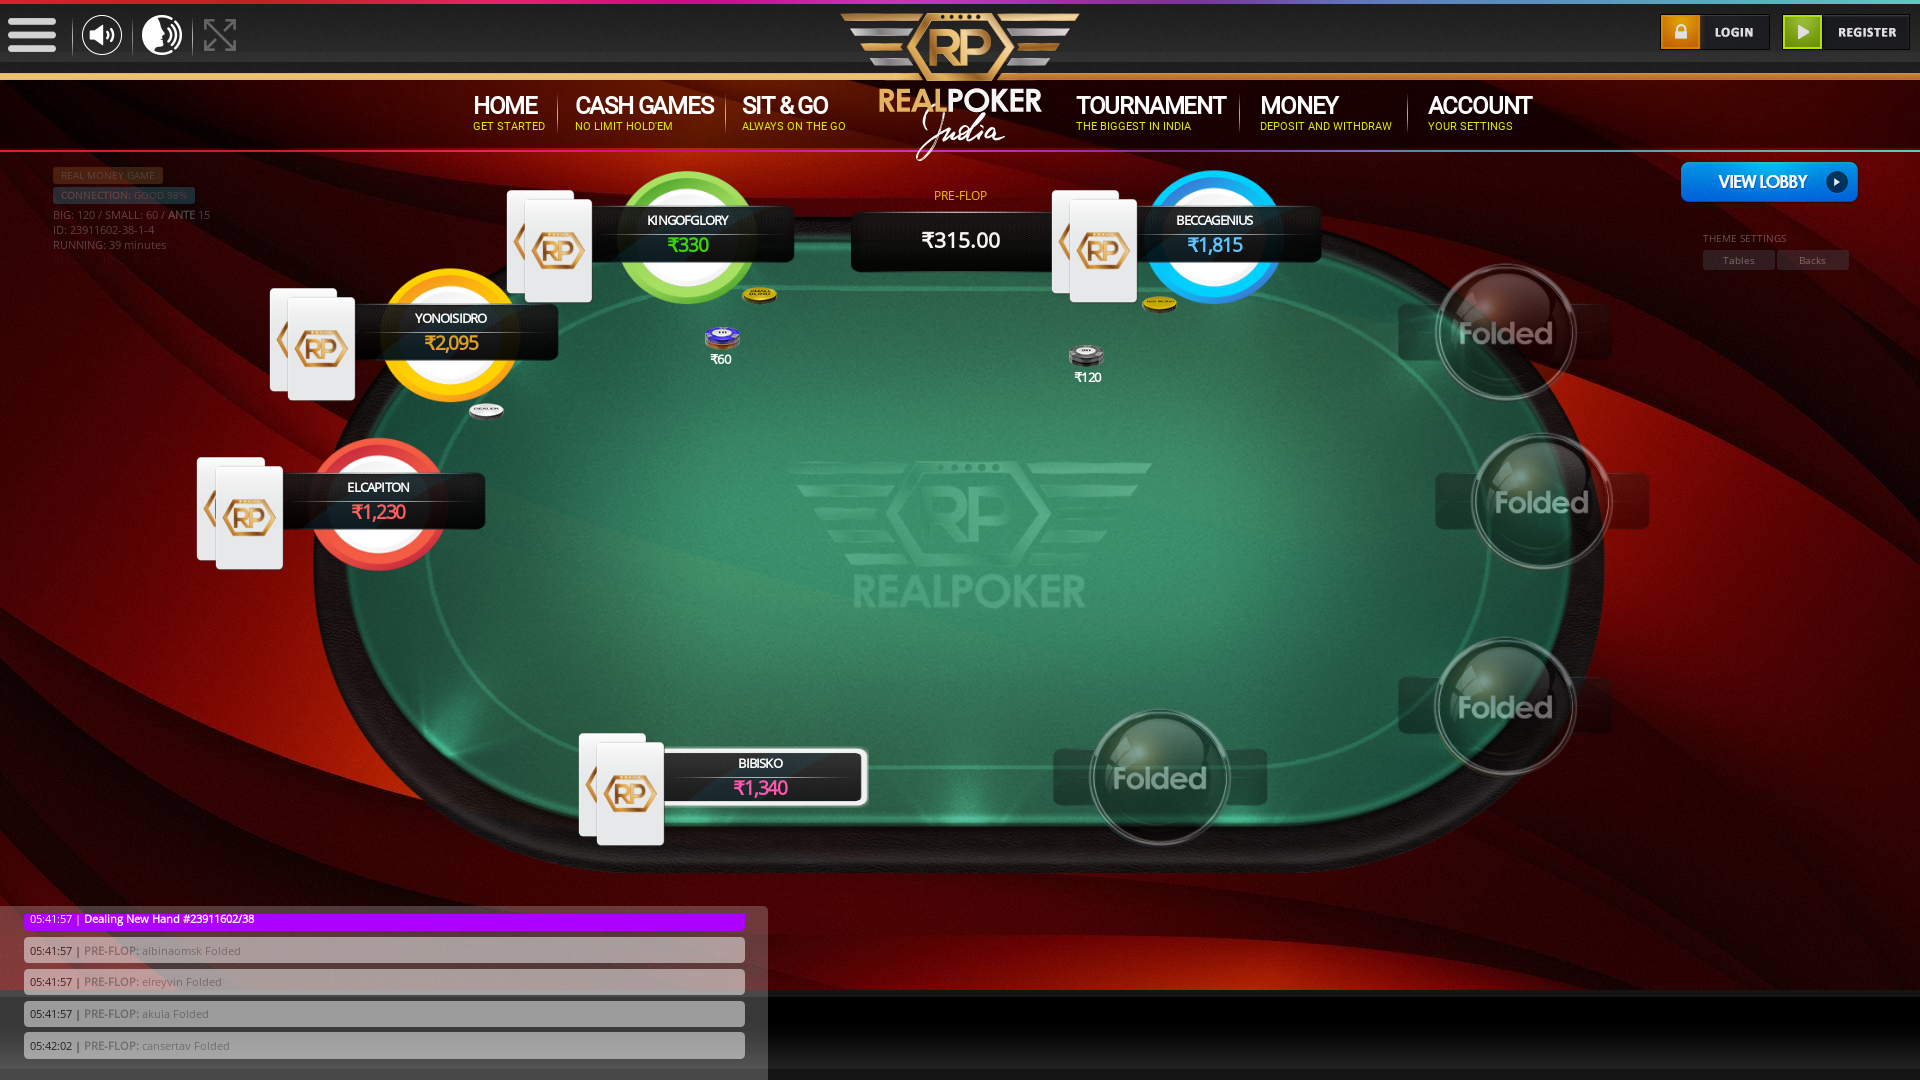 indian 10 player poker in the 39th minute